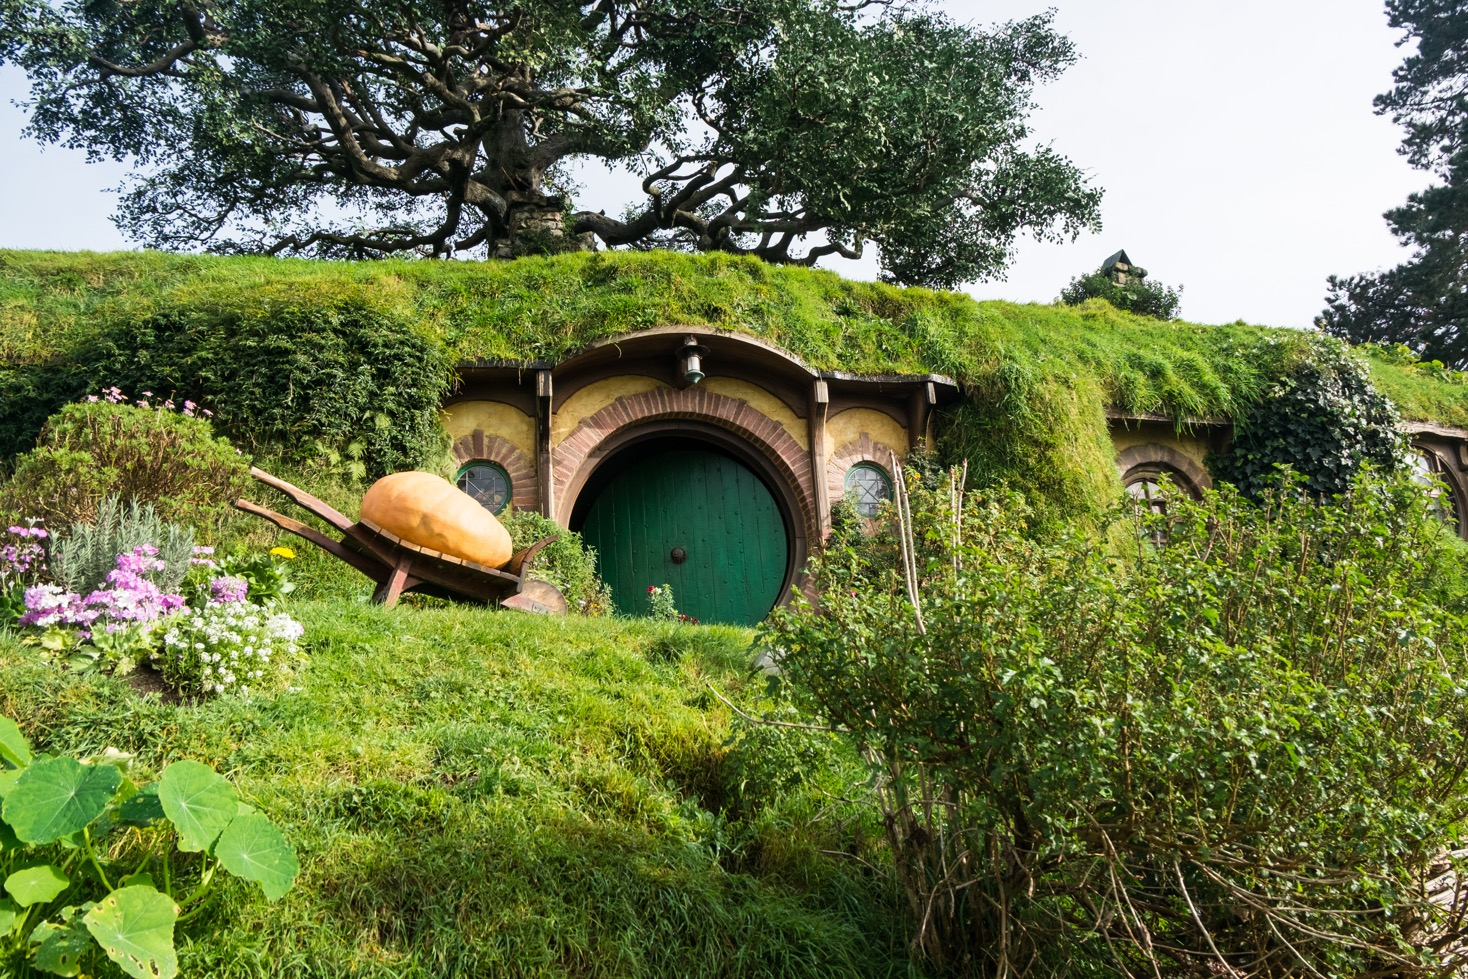 Hobbiton, in the footsteps of Bilbo and Frodo Baggins - I wheel travel